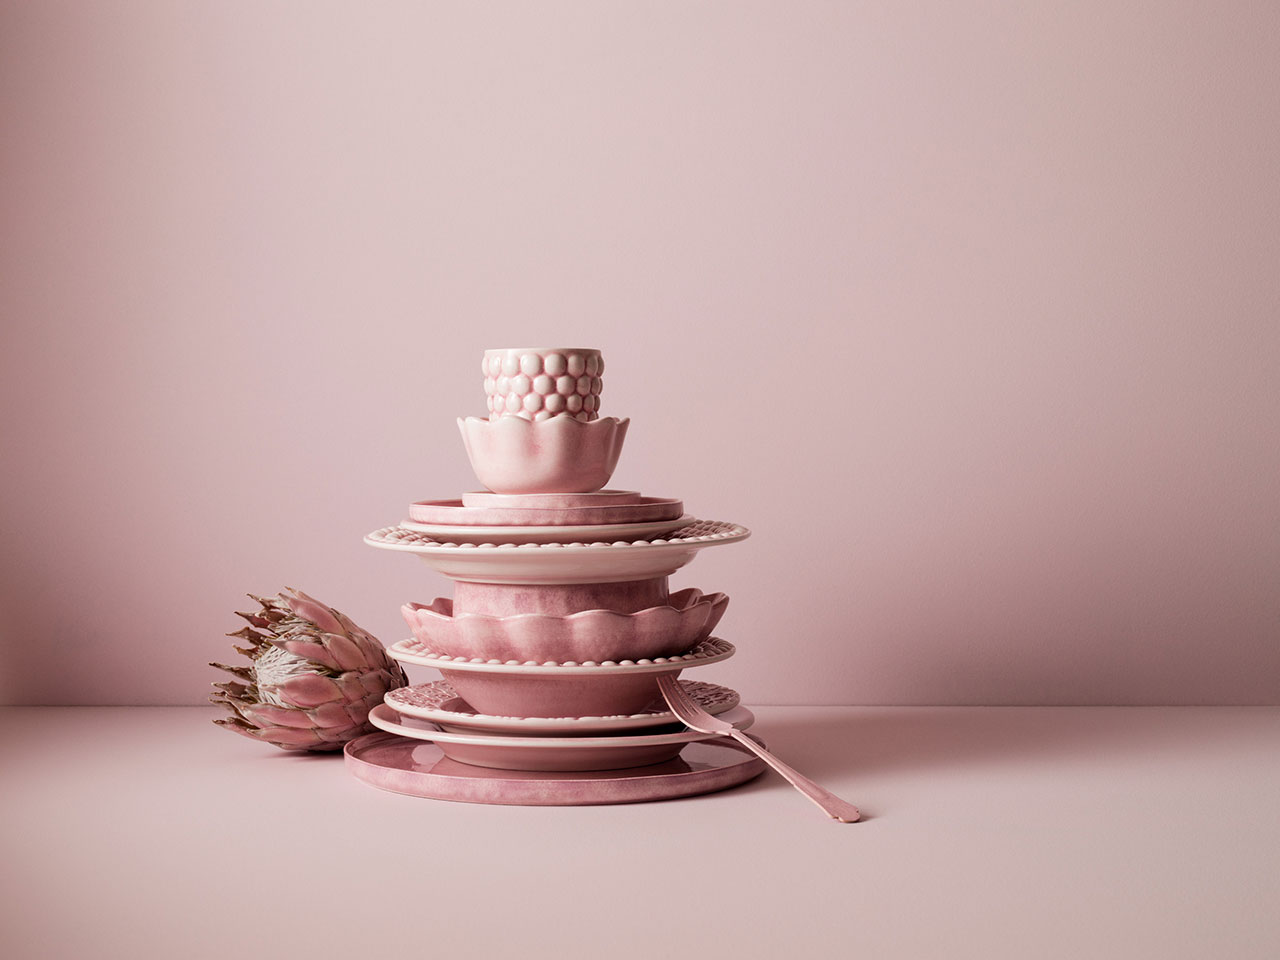 Mateus new colour for SS19, a delightful light pink.Photo by Fabian Bjornstjerna, Styling by Lotta Agaton.